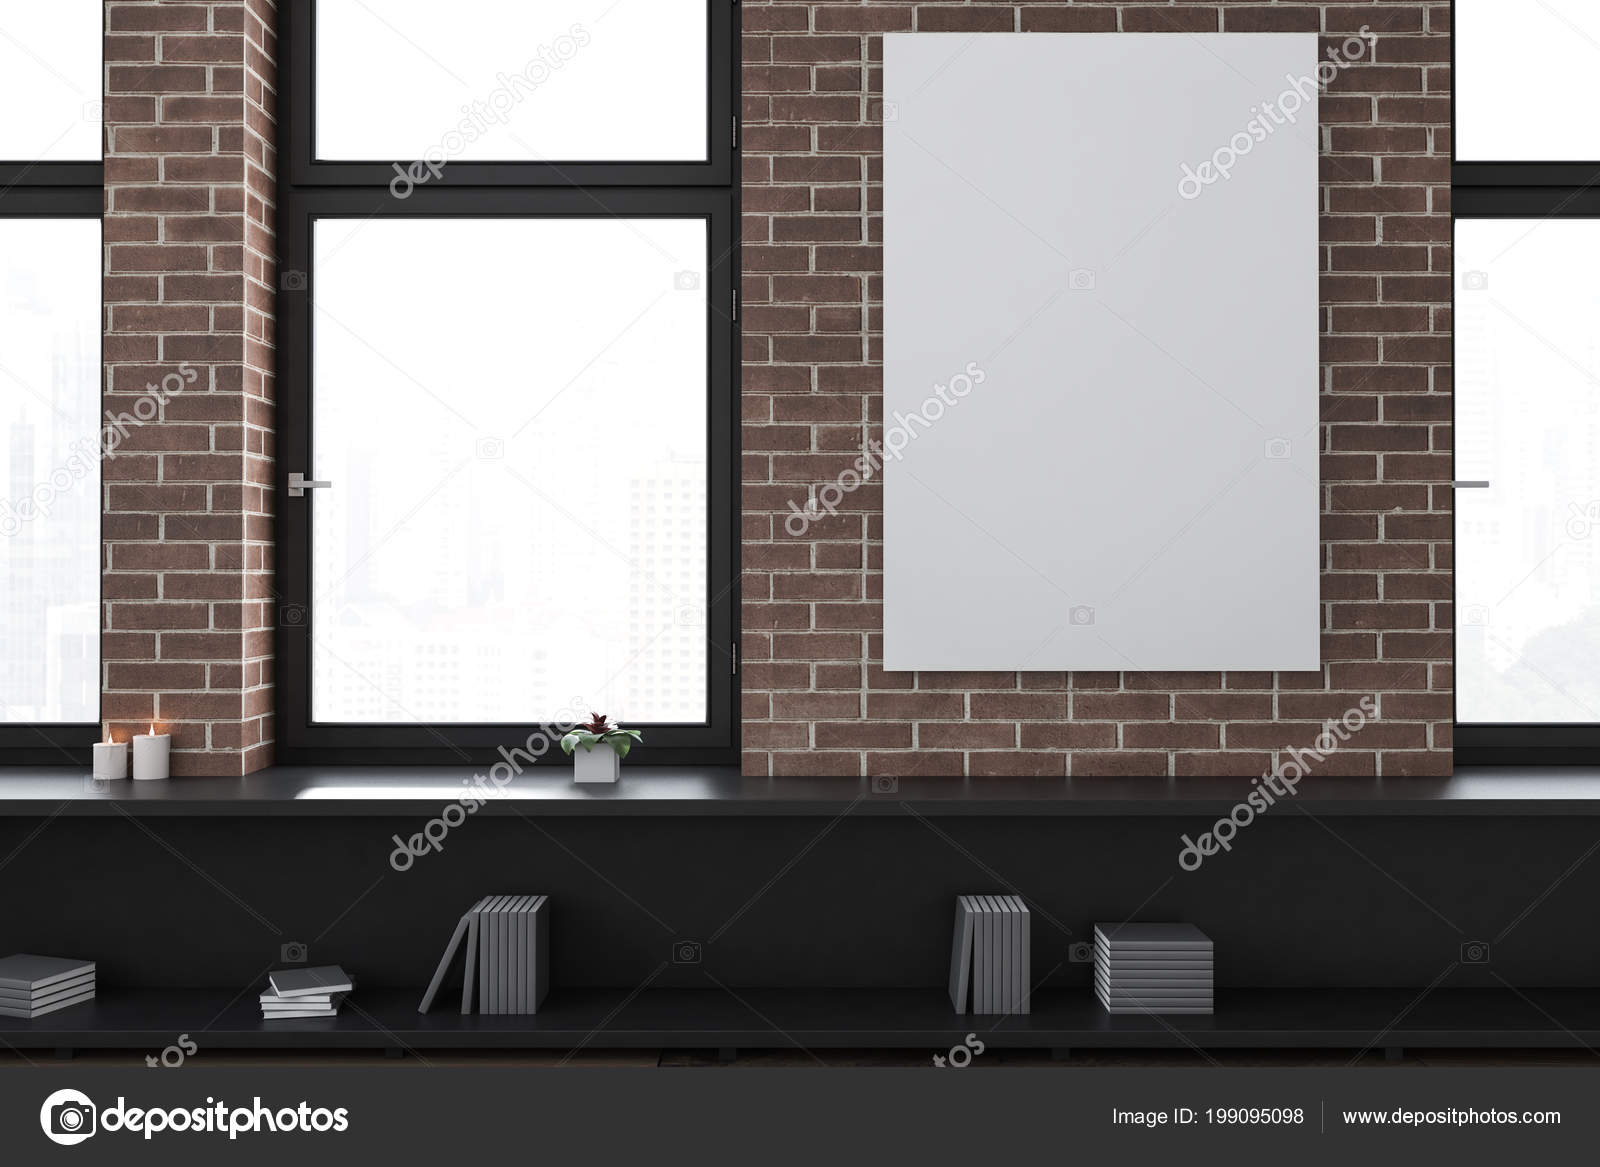 Brick Empty Office Living Room Interior Loft Windows Black